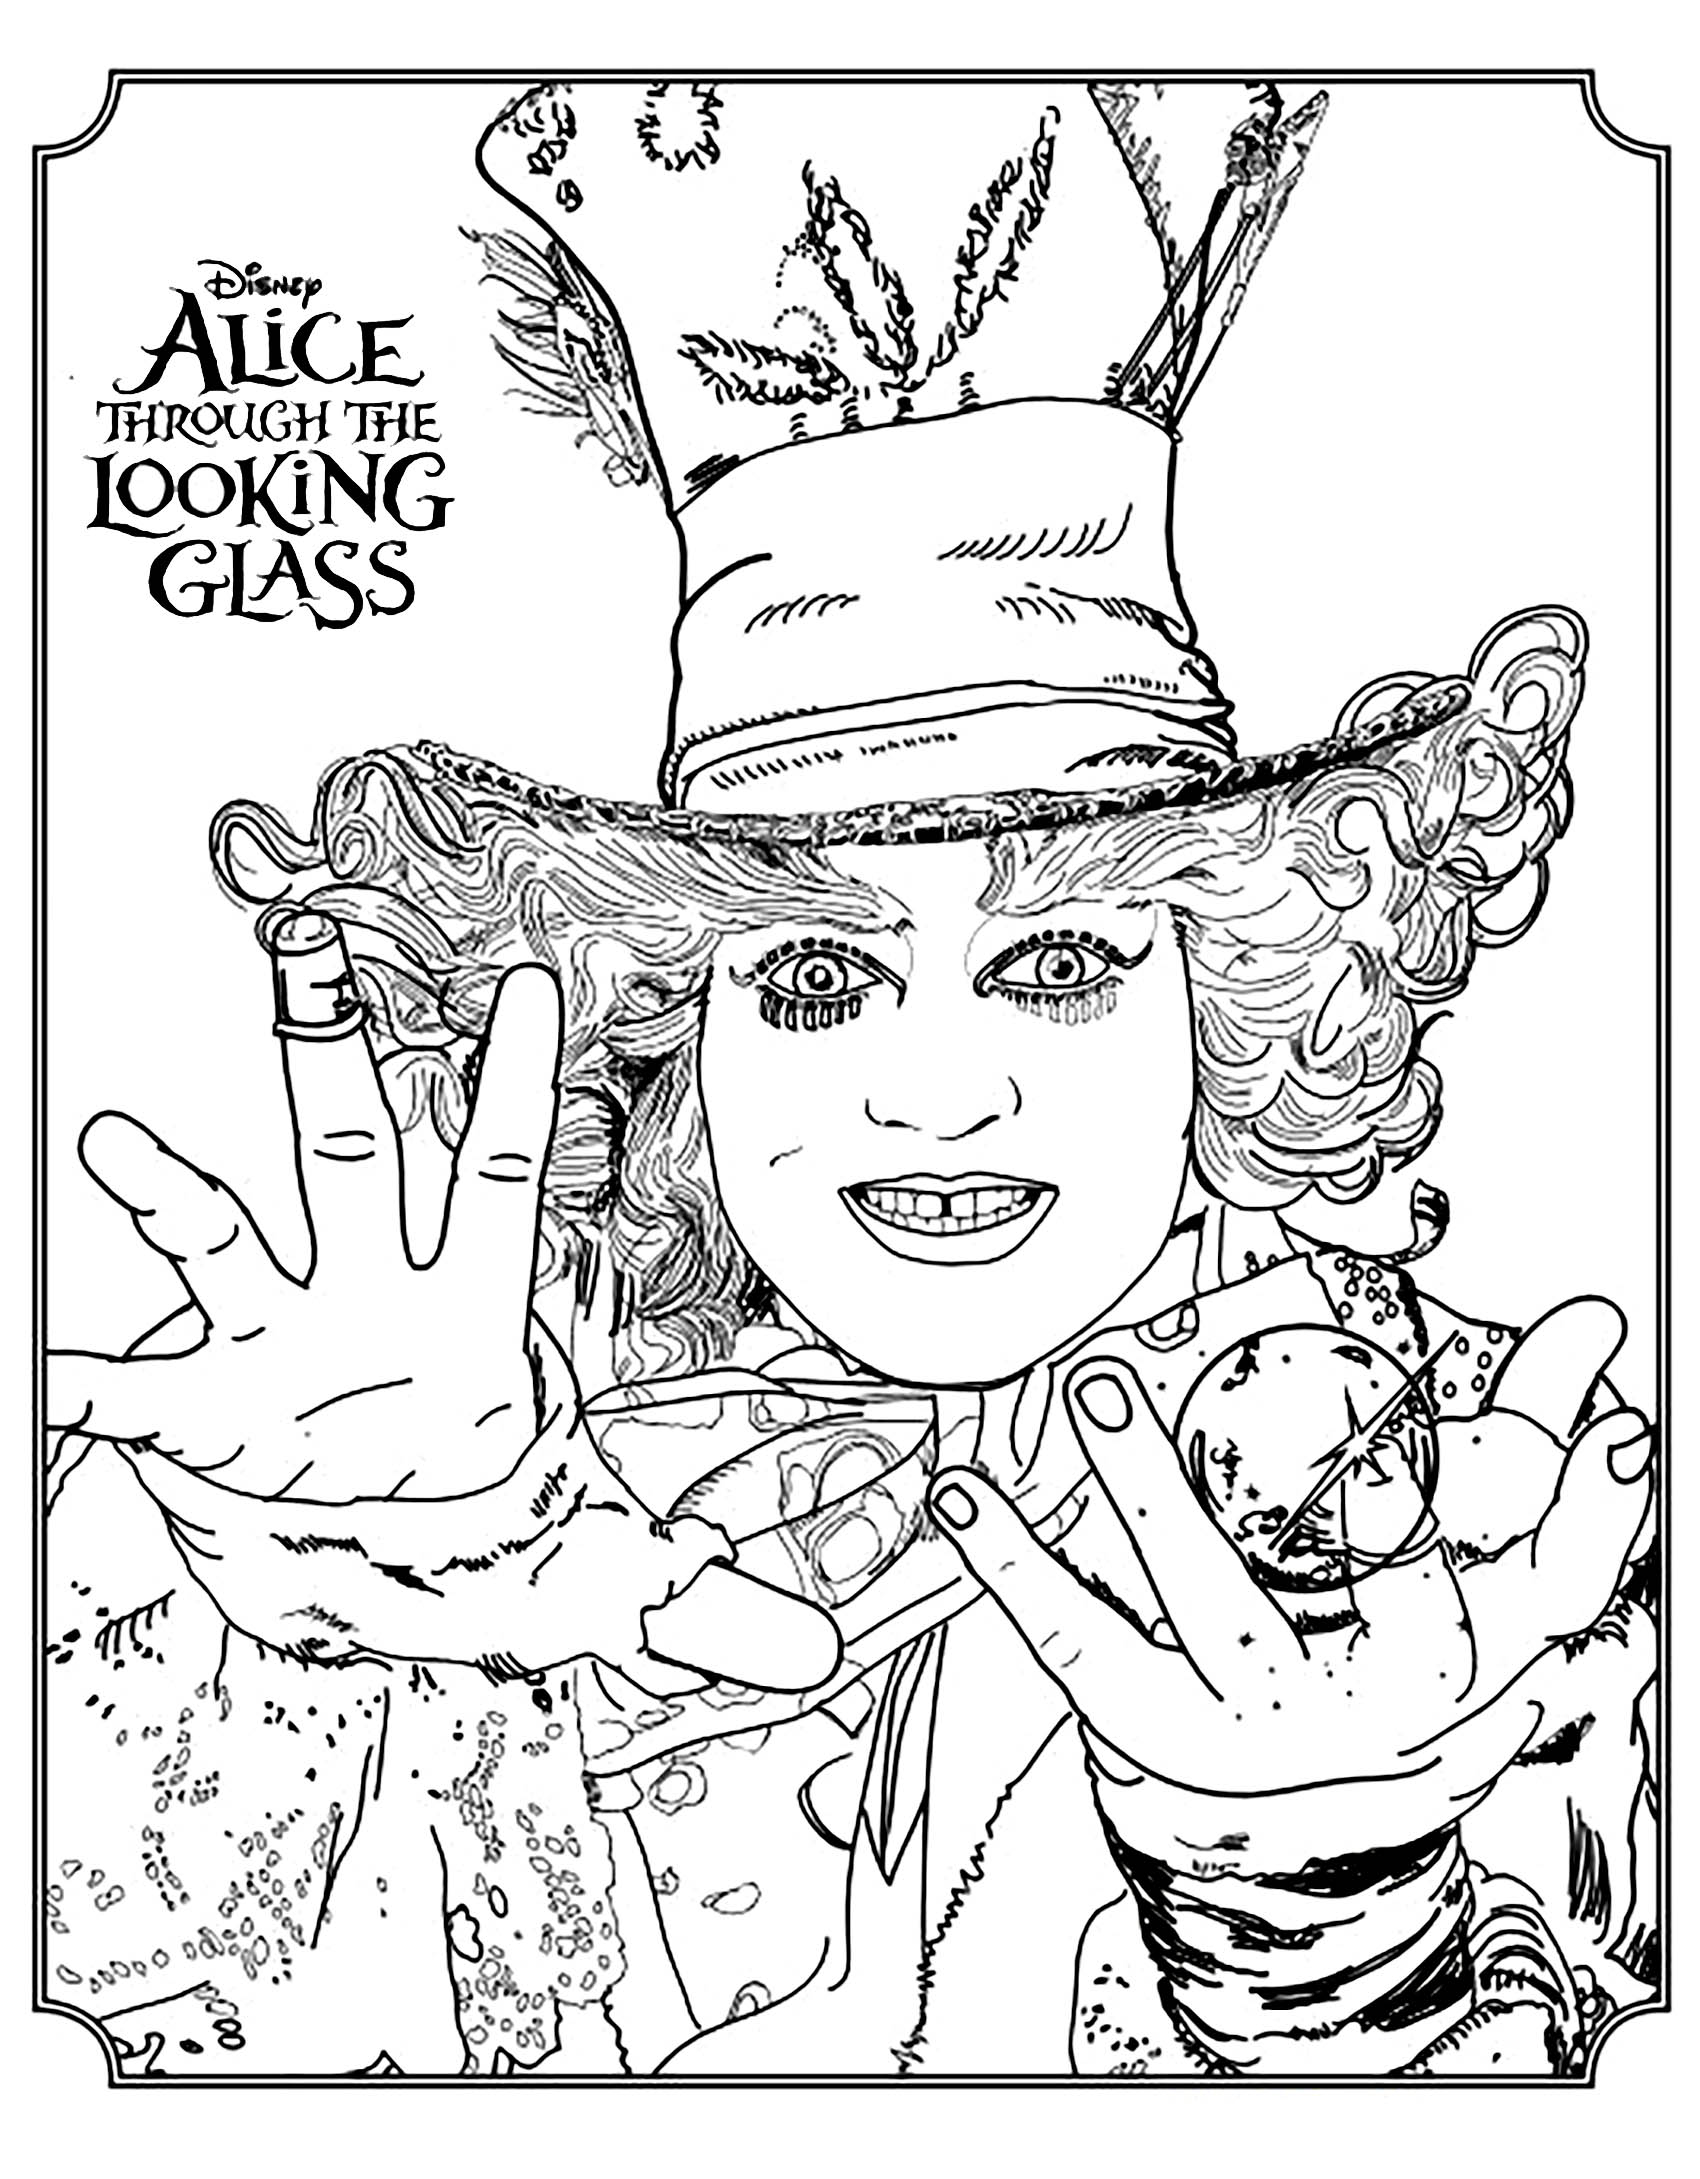 Disney Coloring page for the movie 'Alice Through the Looking Glass' : the Mad Hatter